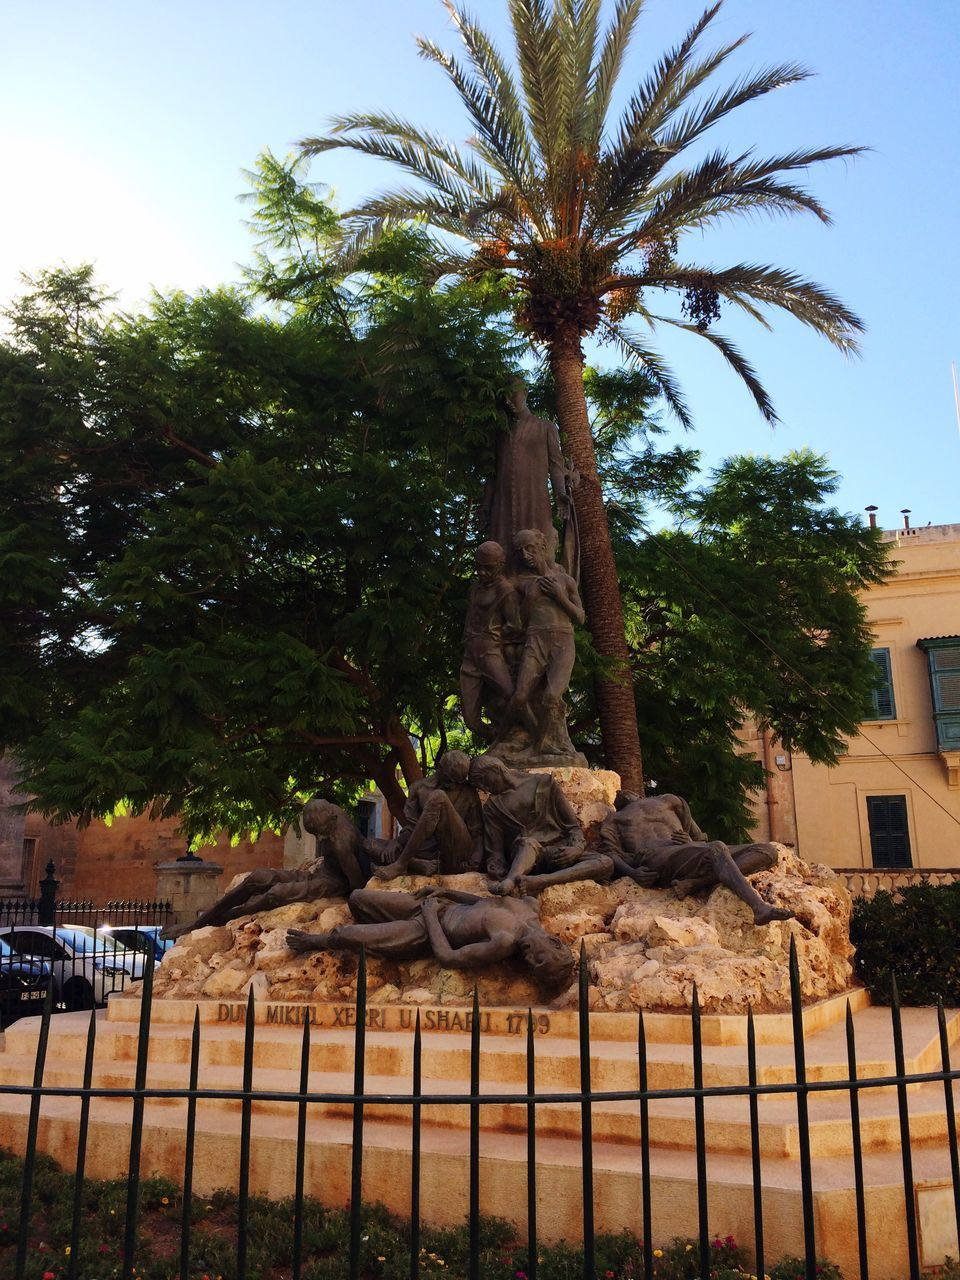 tree, statue, sculpture, no people, palm tree, sky, outdoors, nature, day